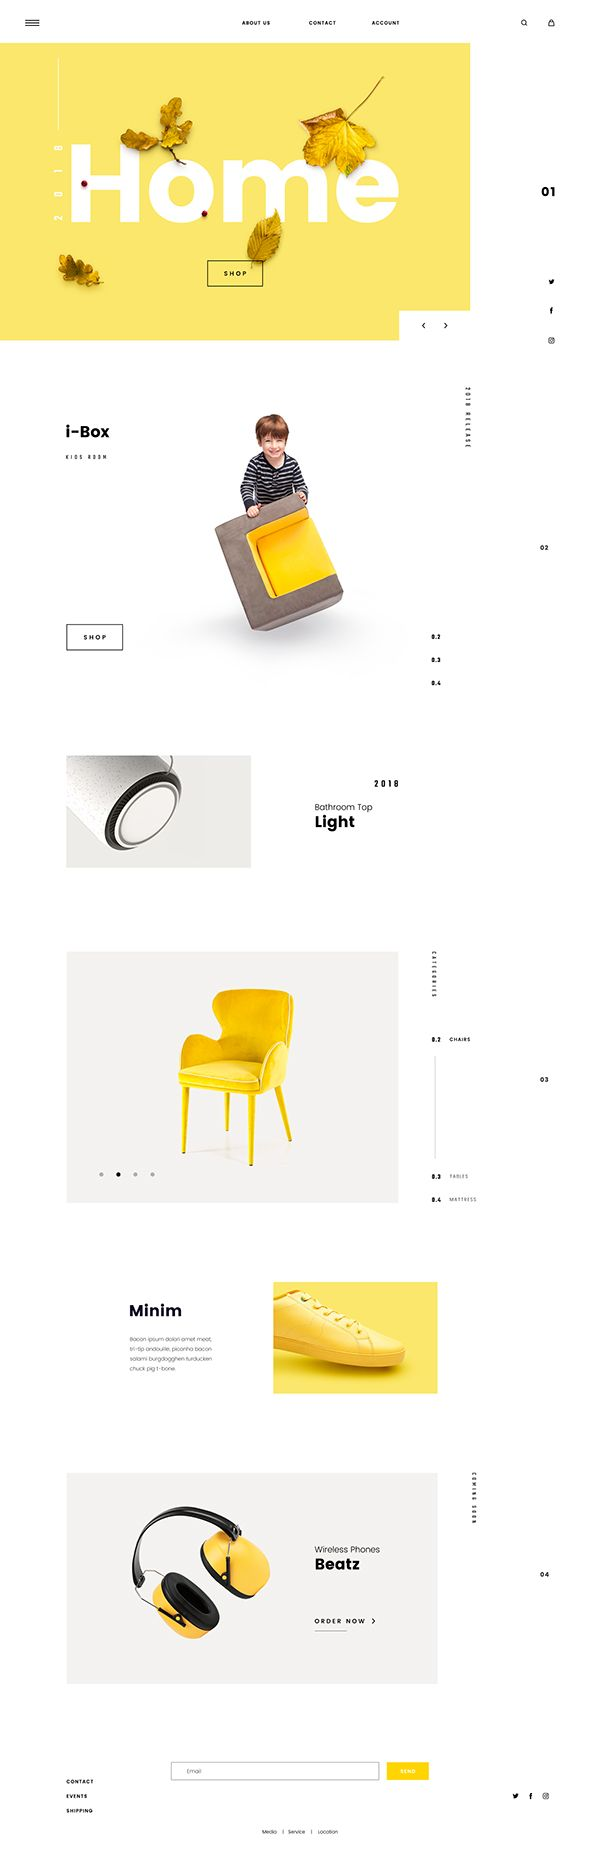 Minimalistic UI coupled with Scandinavian Design for E-commerce website